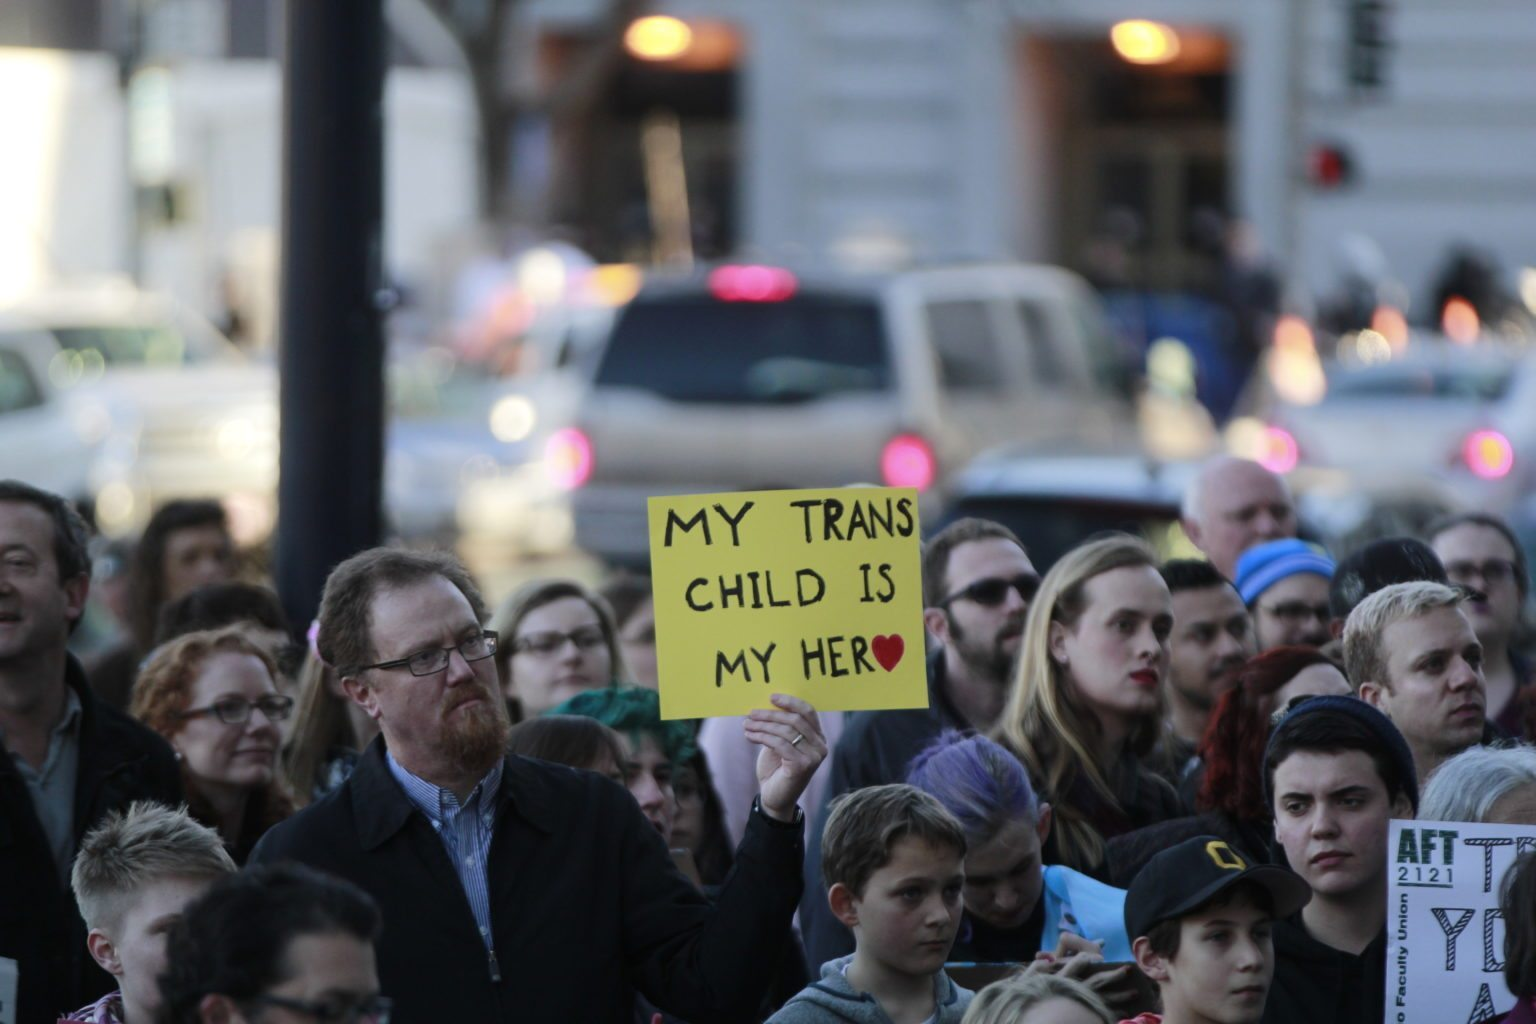 A large crowd gathers outside City Hall during a rally held in solidarity with transgender youth held in San Francisco, Calif. Thursday, February 23, 2017. (Jessica Christian/S.F. Examiner)